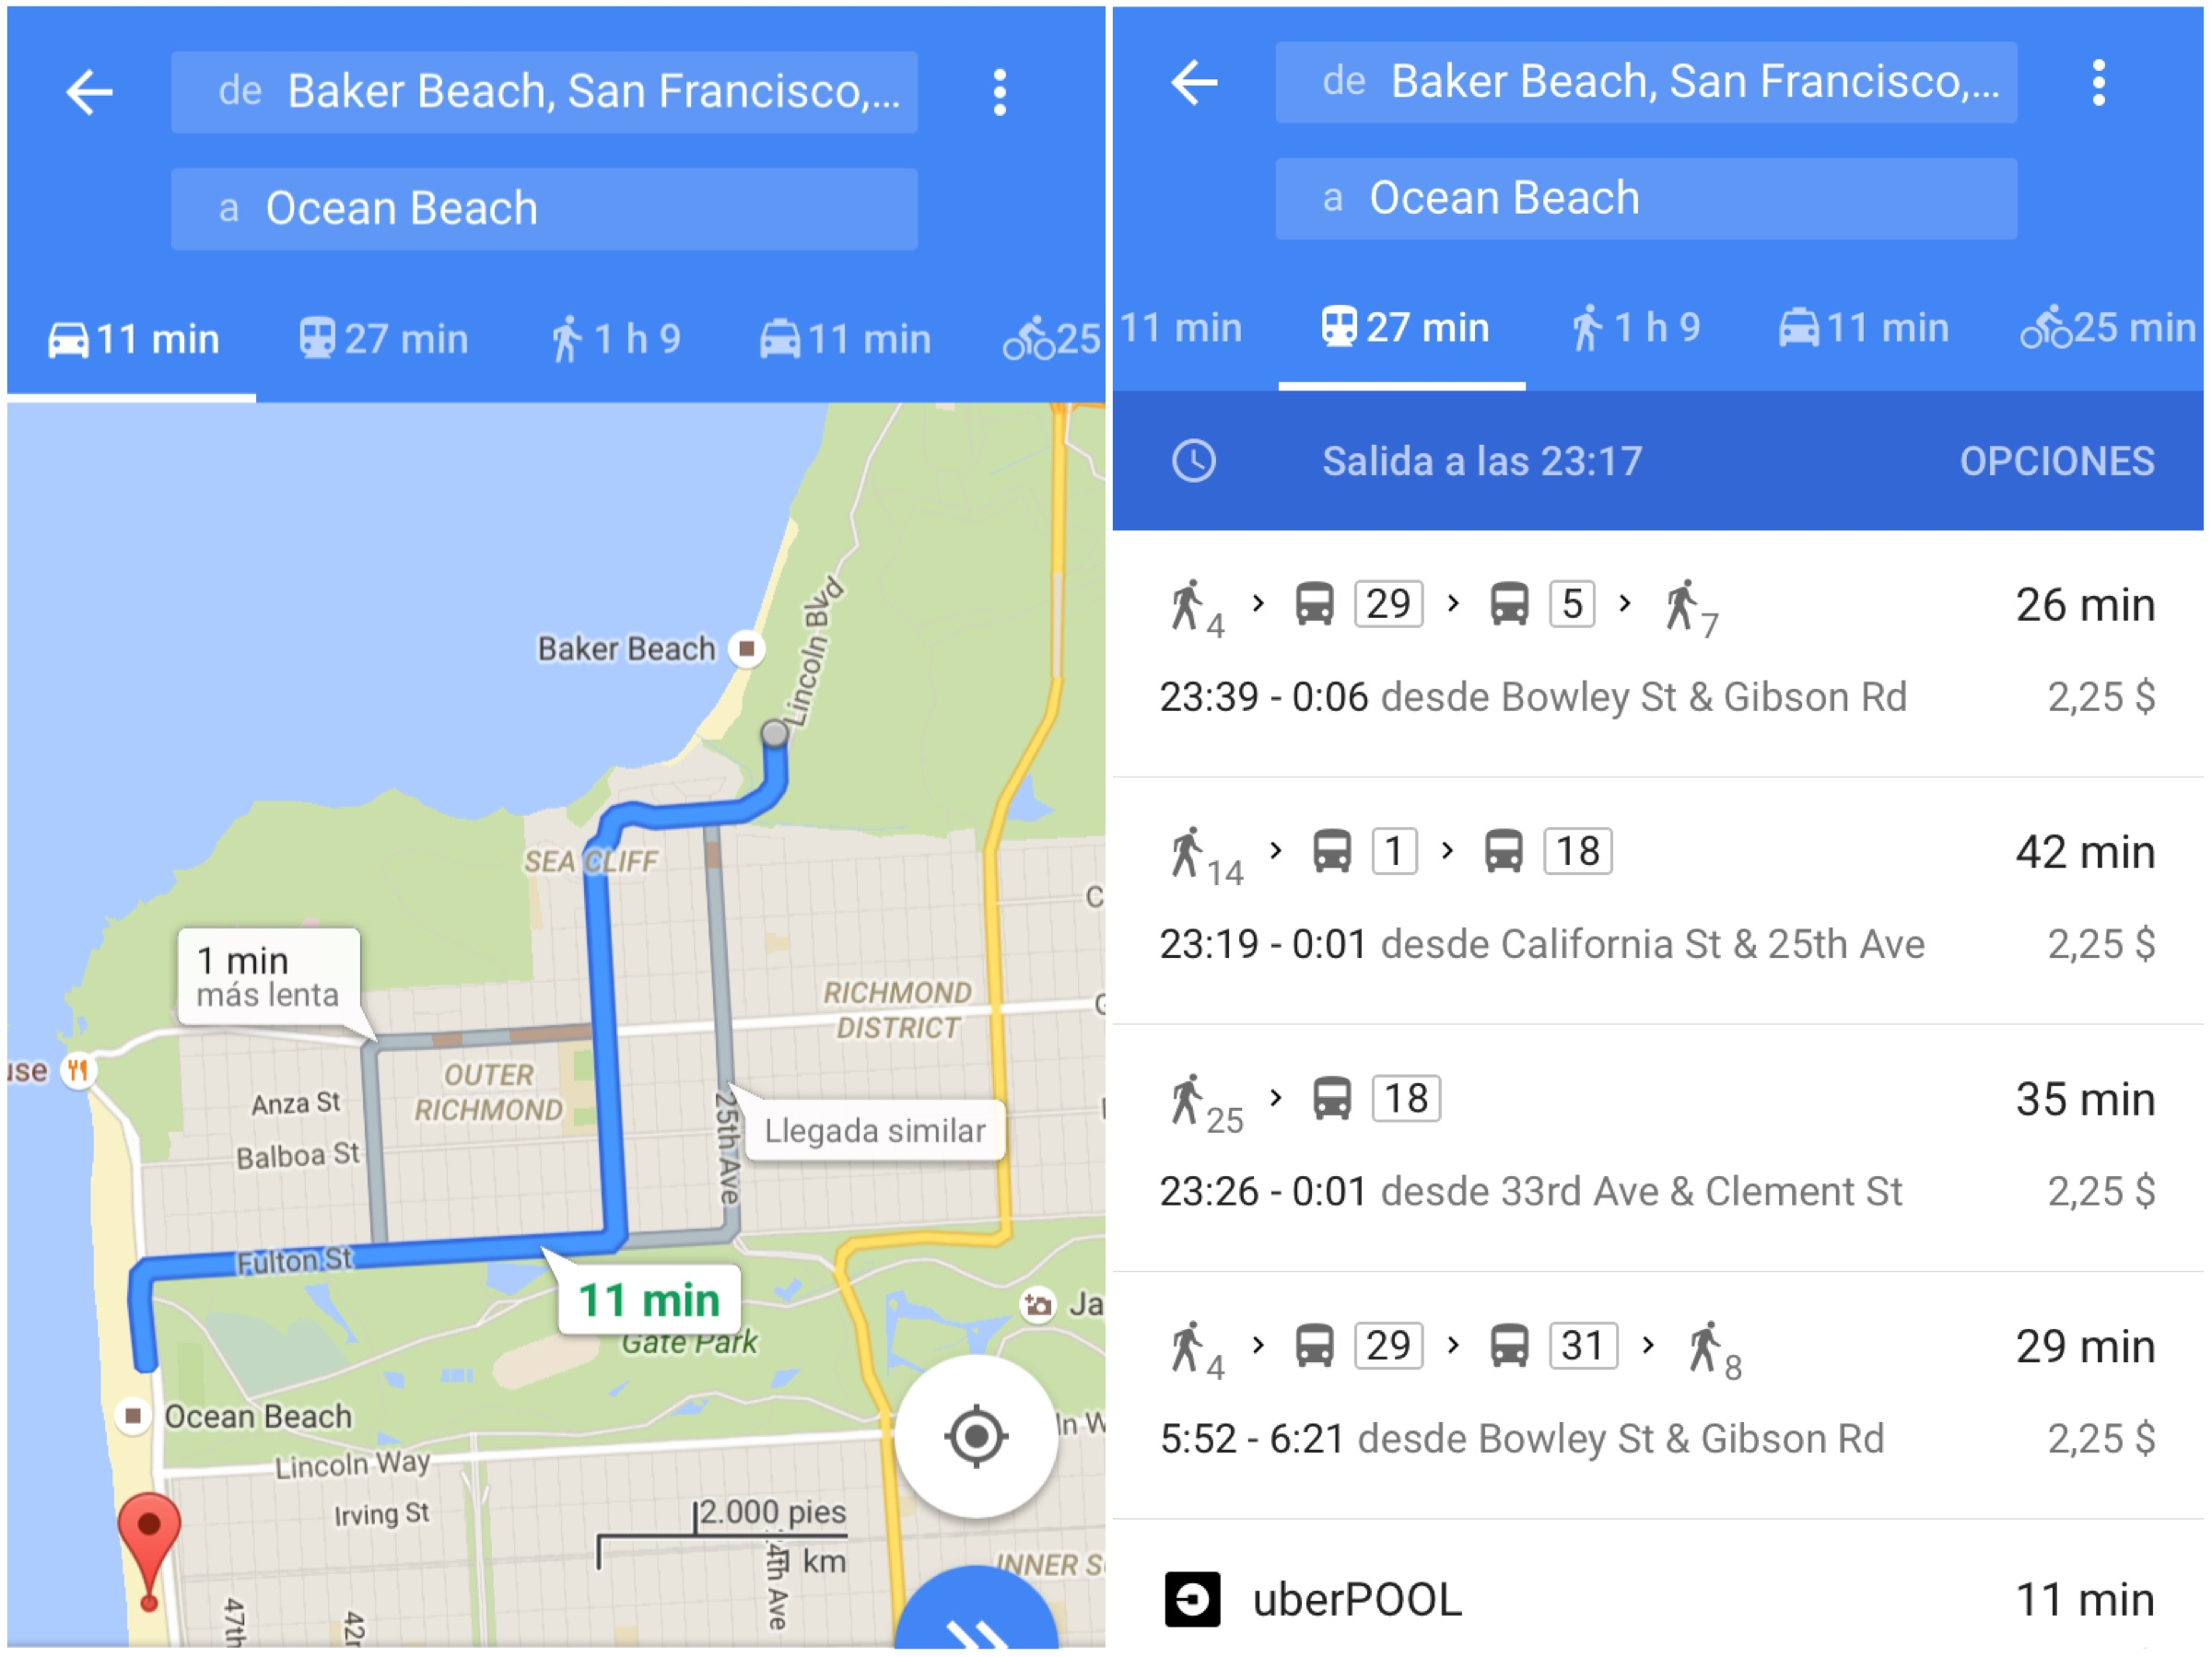 Come utilizzare google maps a San Francisco